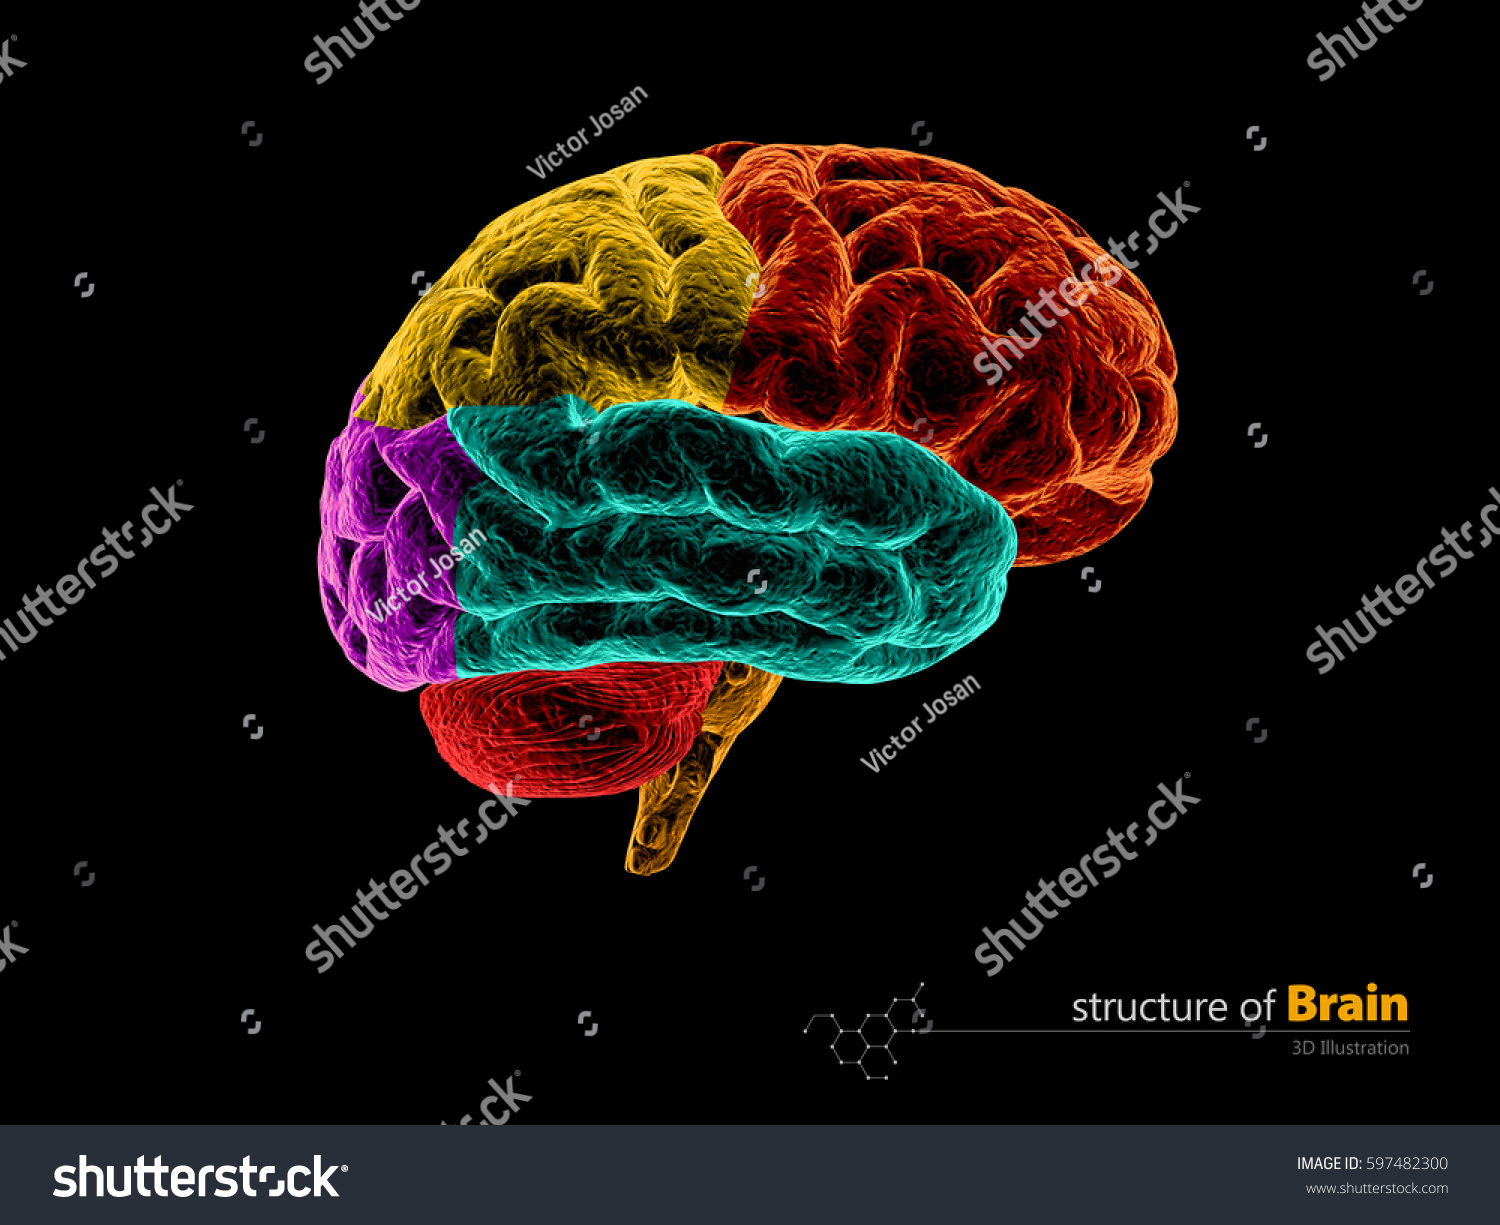 Royalty Free Stock Illustration of Human Brain Anatomy Structure ...